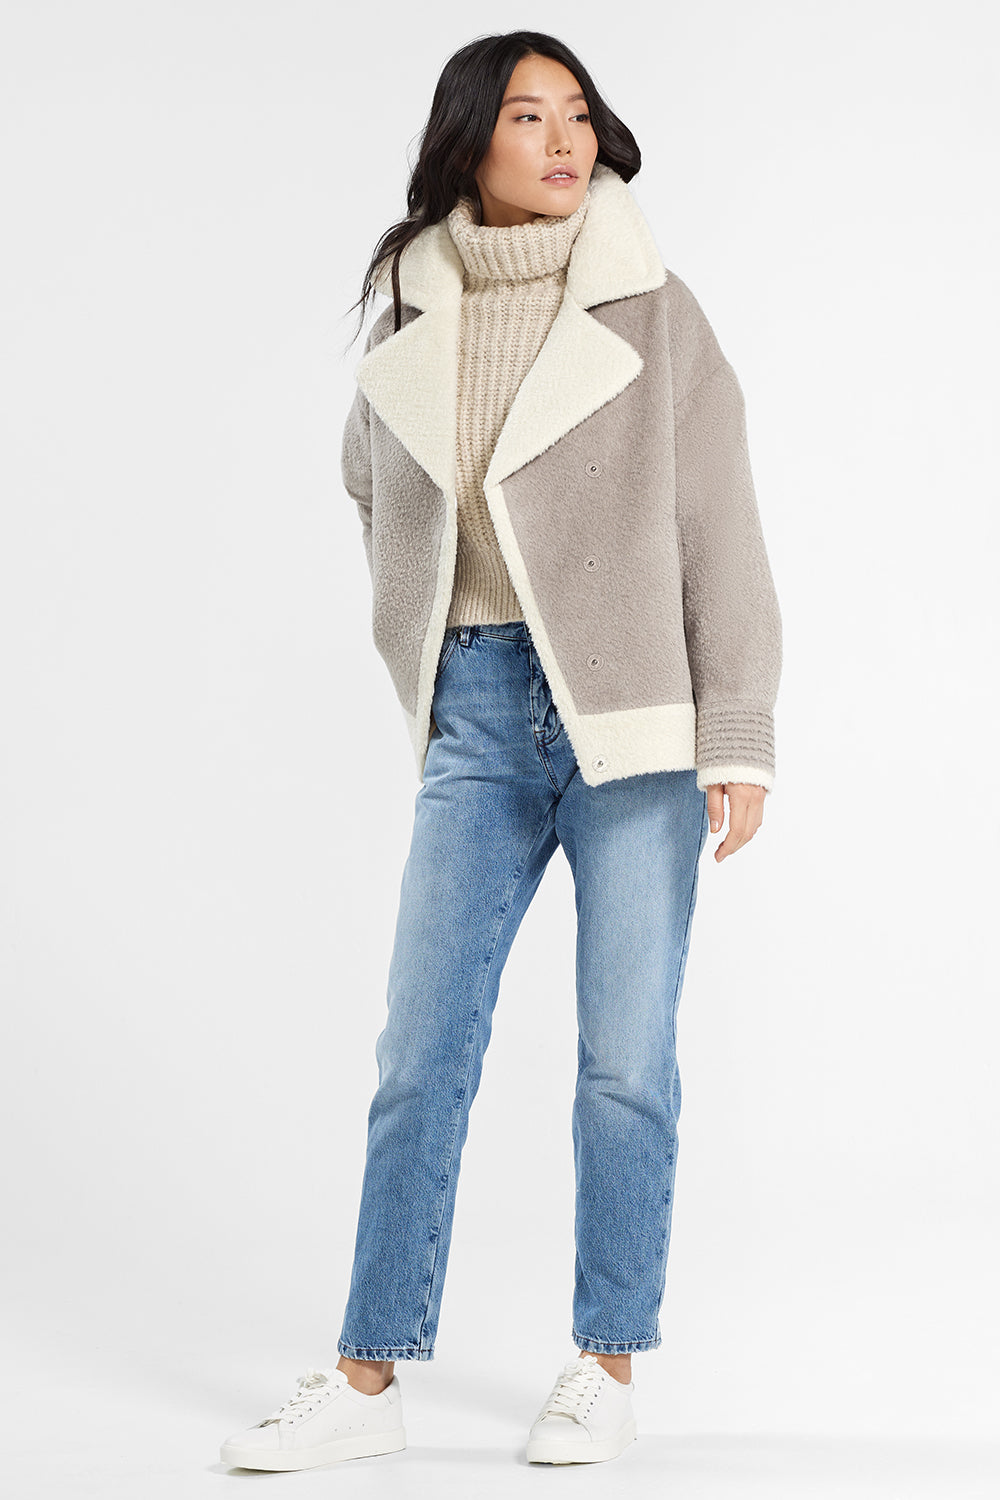 Sentaler Bouclé Alpaca Dropped Shoulder Boyfriend Jacket featured in Bouclé Alpaca and available in Sand. Seen open.